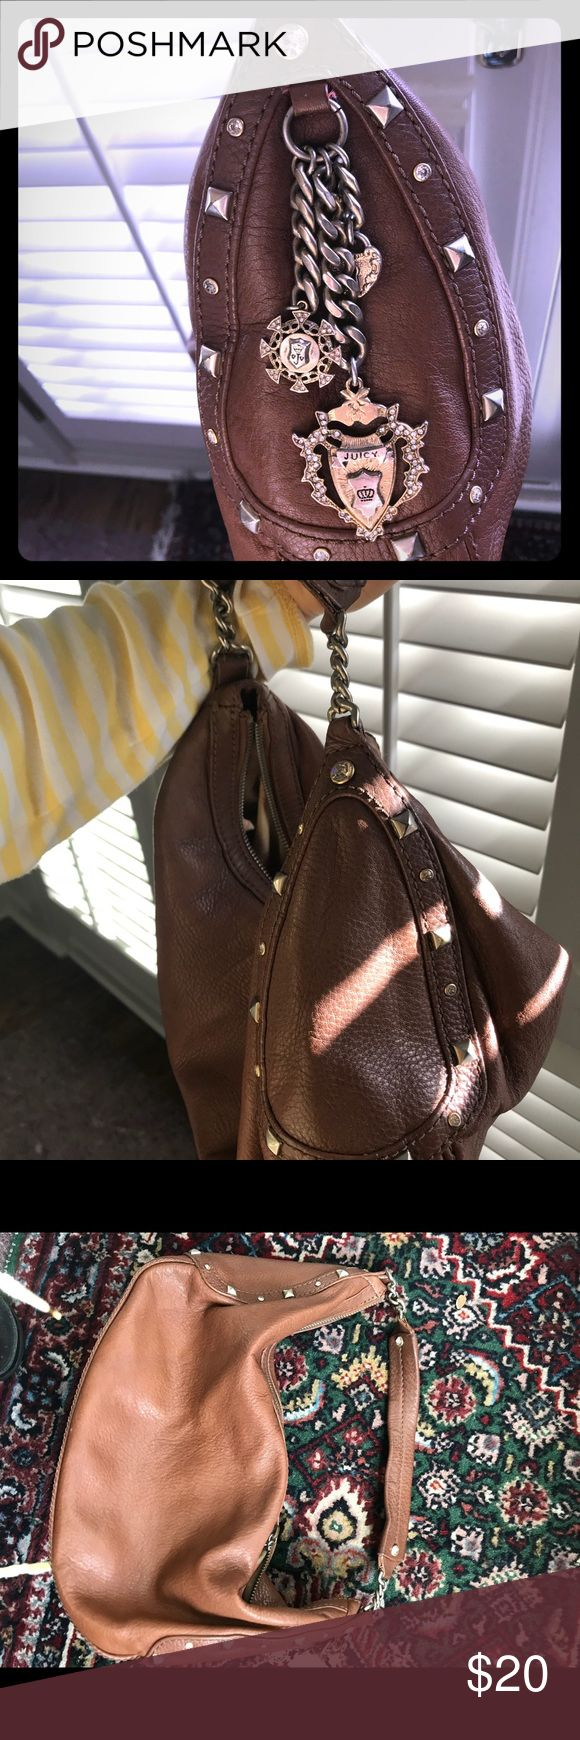 Juicy Couture brown leather bag Brown leather hobo, good used condition. Gold tone hardware with all stones intact. Any questions, just ask. Make me an offer! Everything needs to go! Juicy Couture Bags Hobos